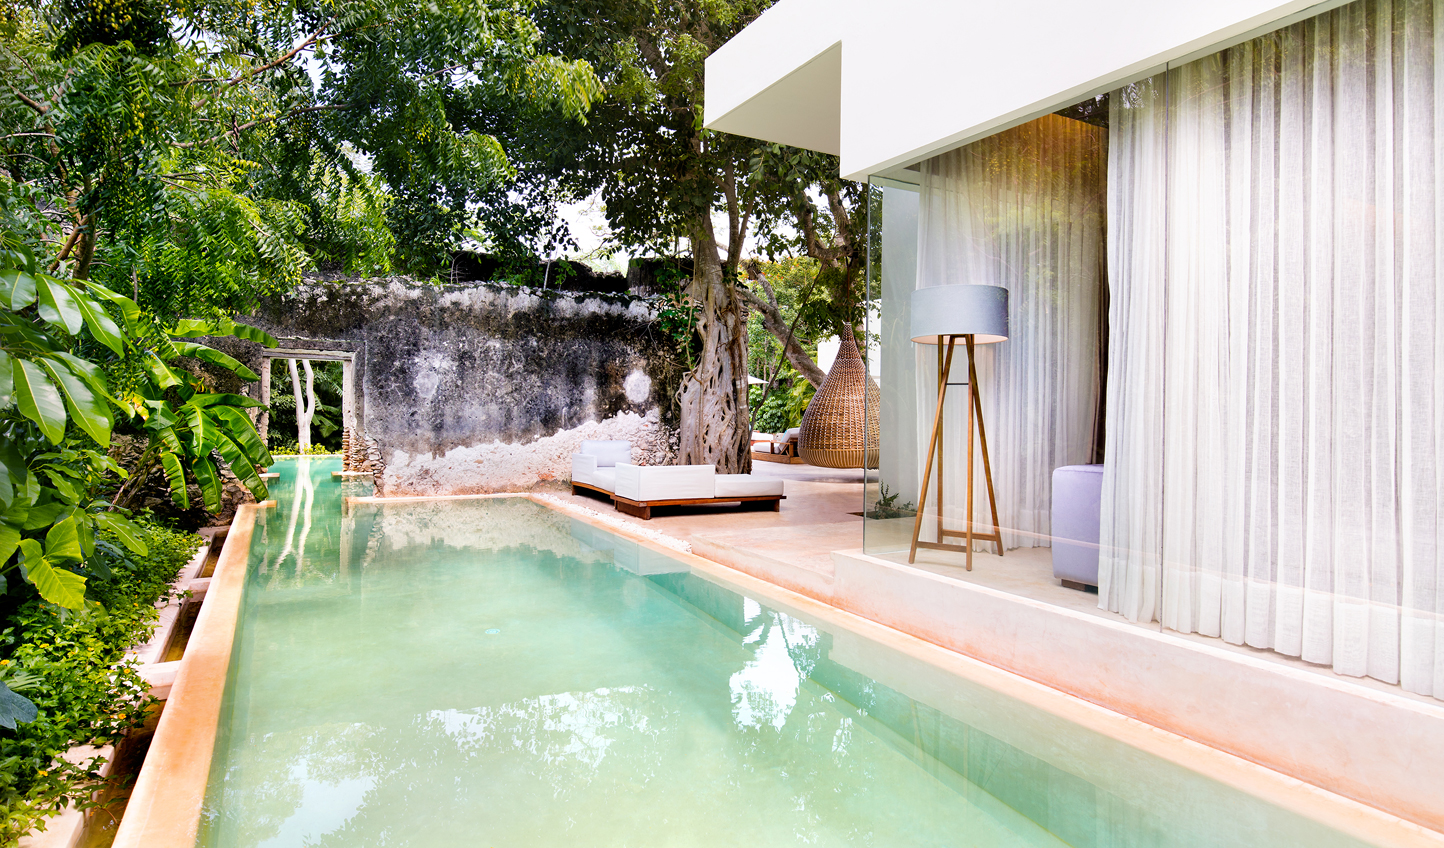 Your sanctuary in the tropical gardens of the Yucatan